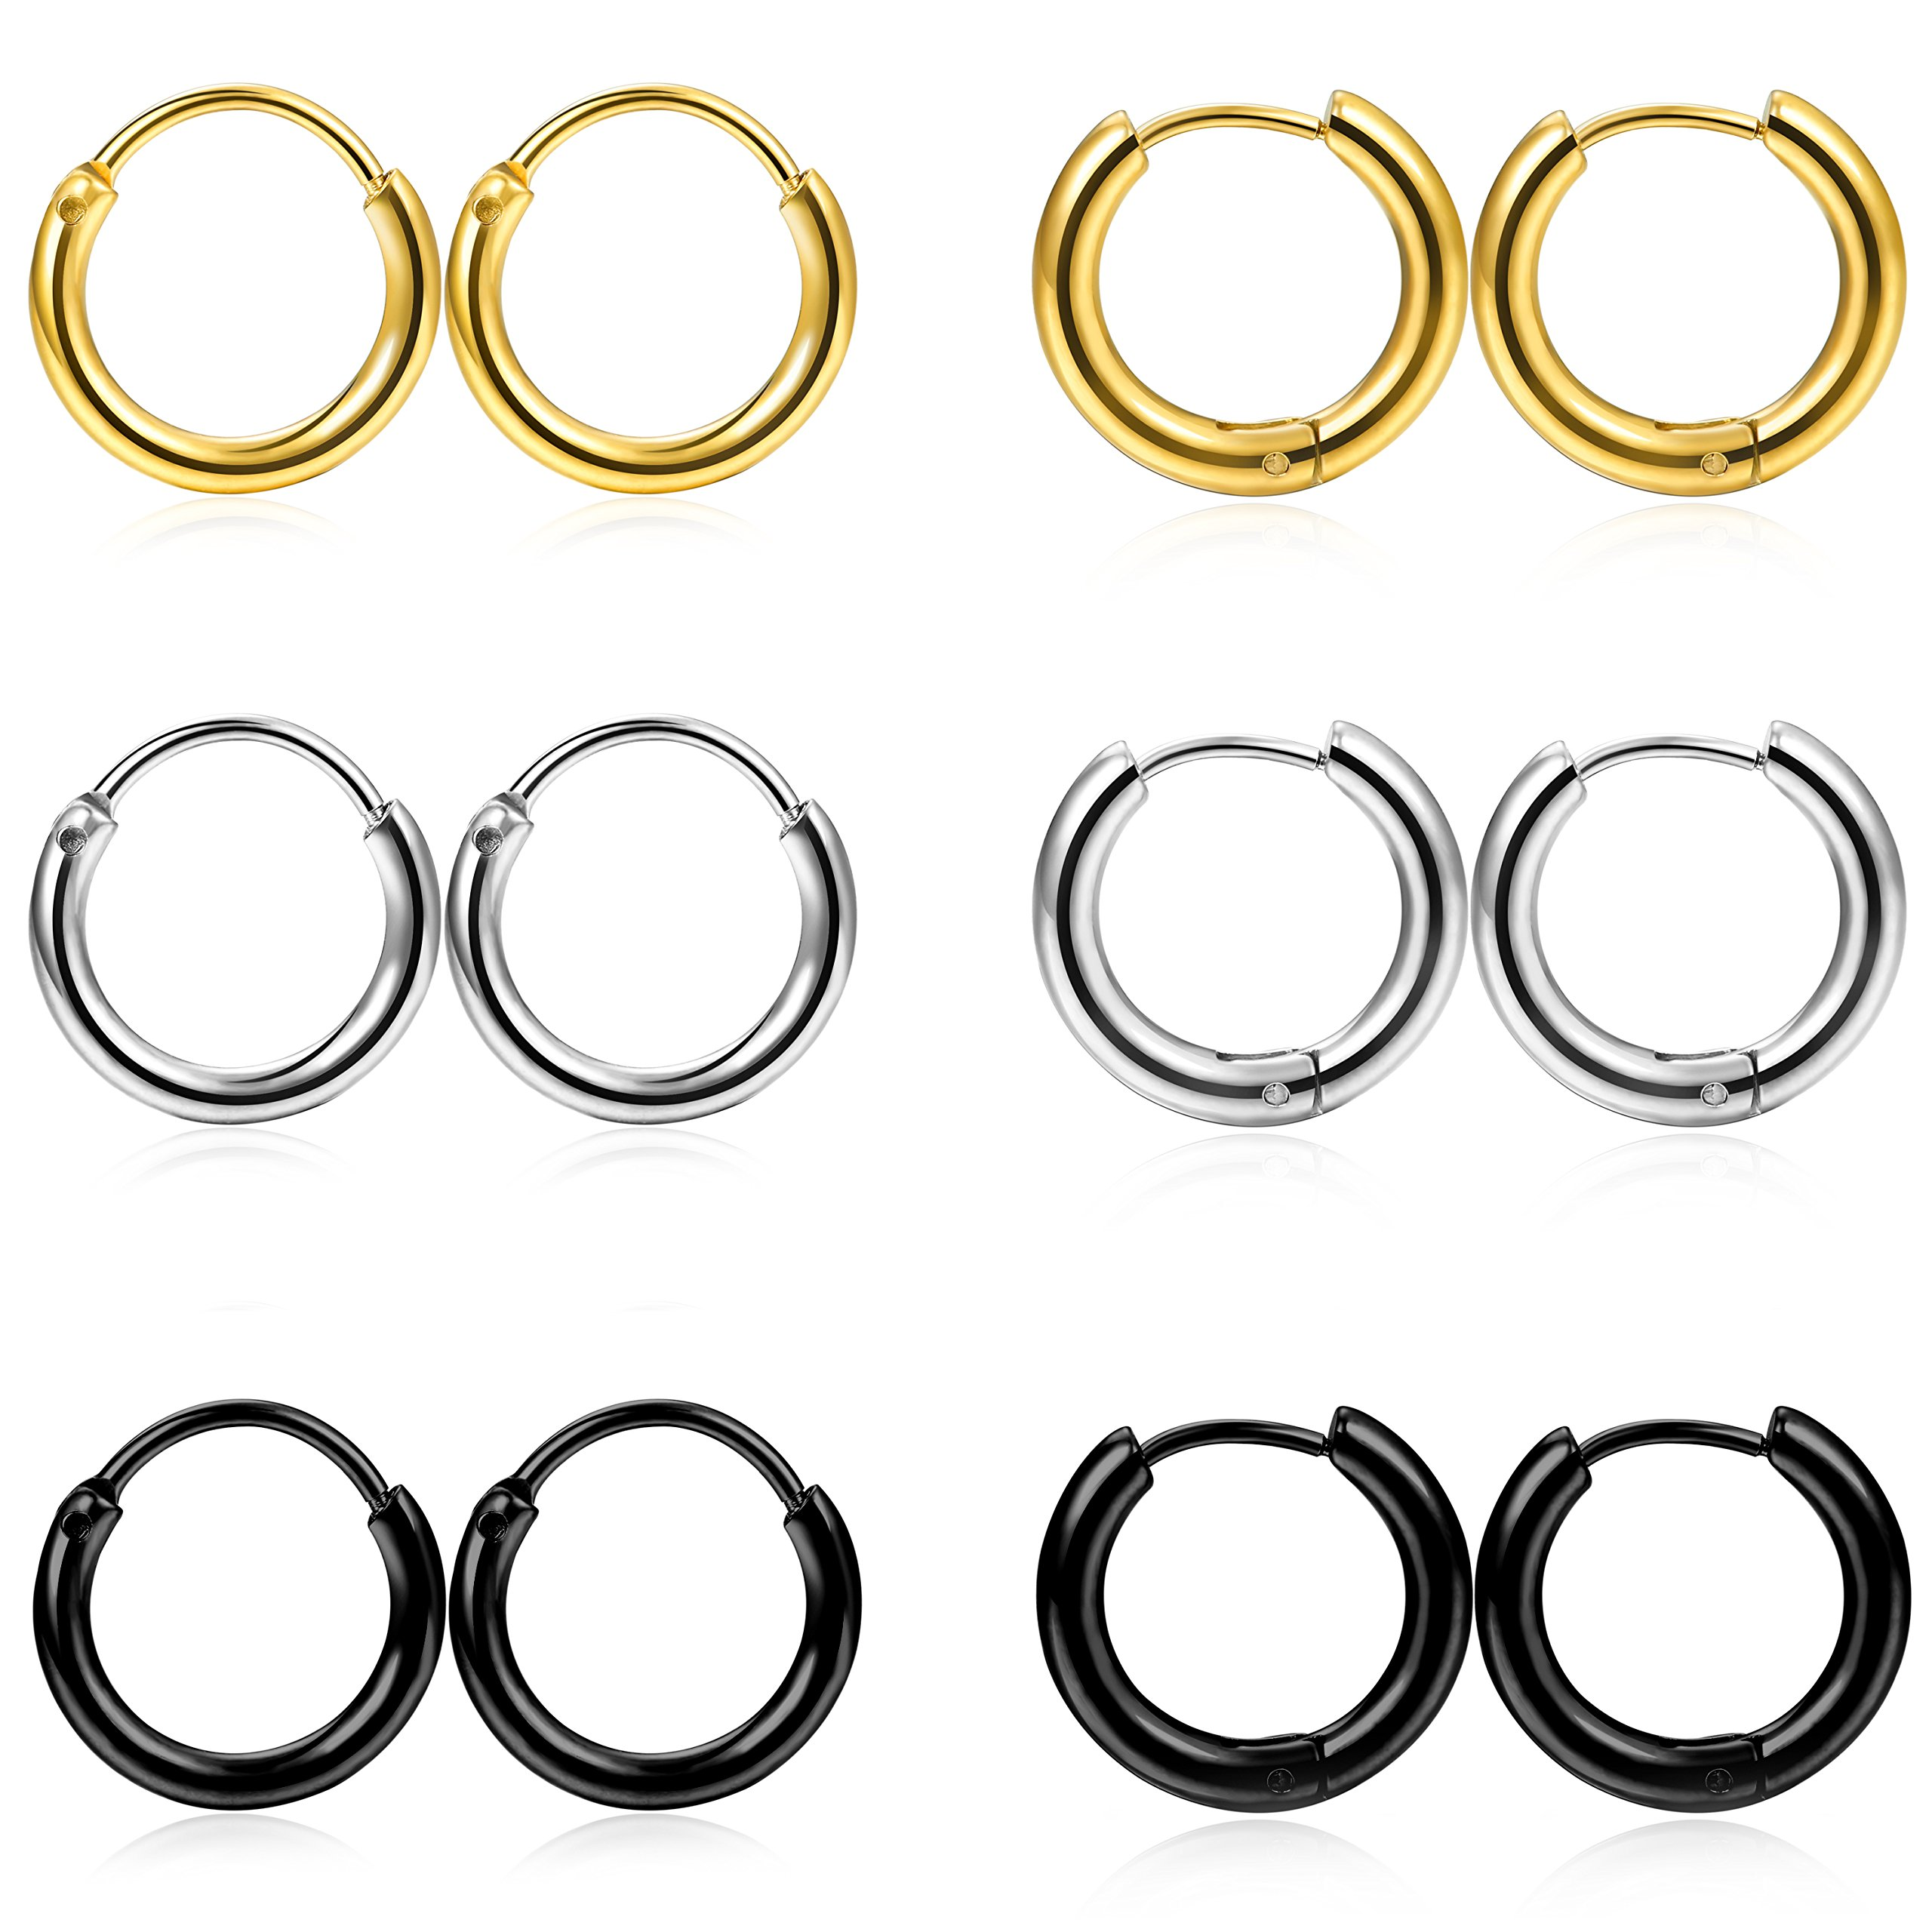 FIBO STEEL 6 Pairs Stainless Steel Cartilage Hoop Earring for Men Women Small Endless Hoop Earring Huggie 18G 10mm Hoop Earrings